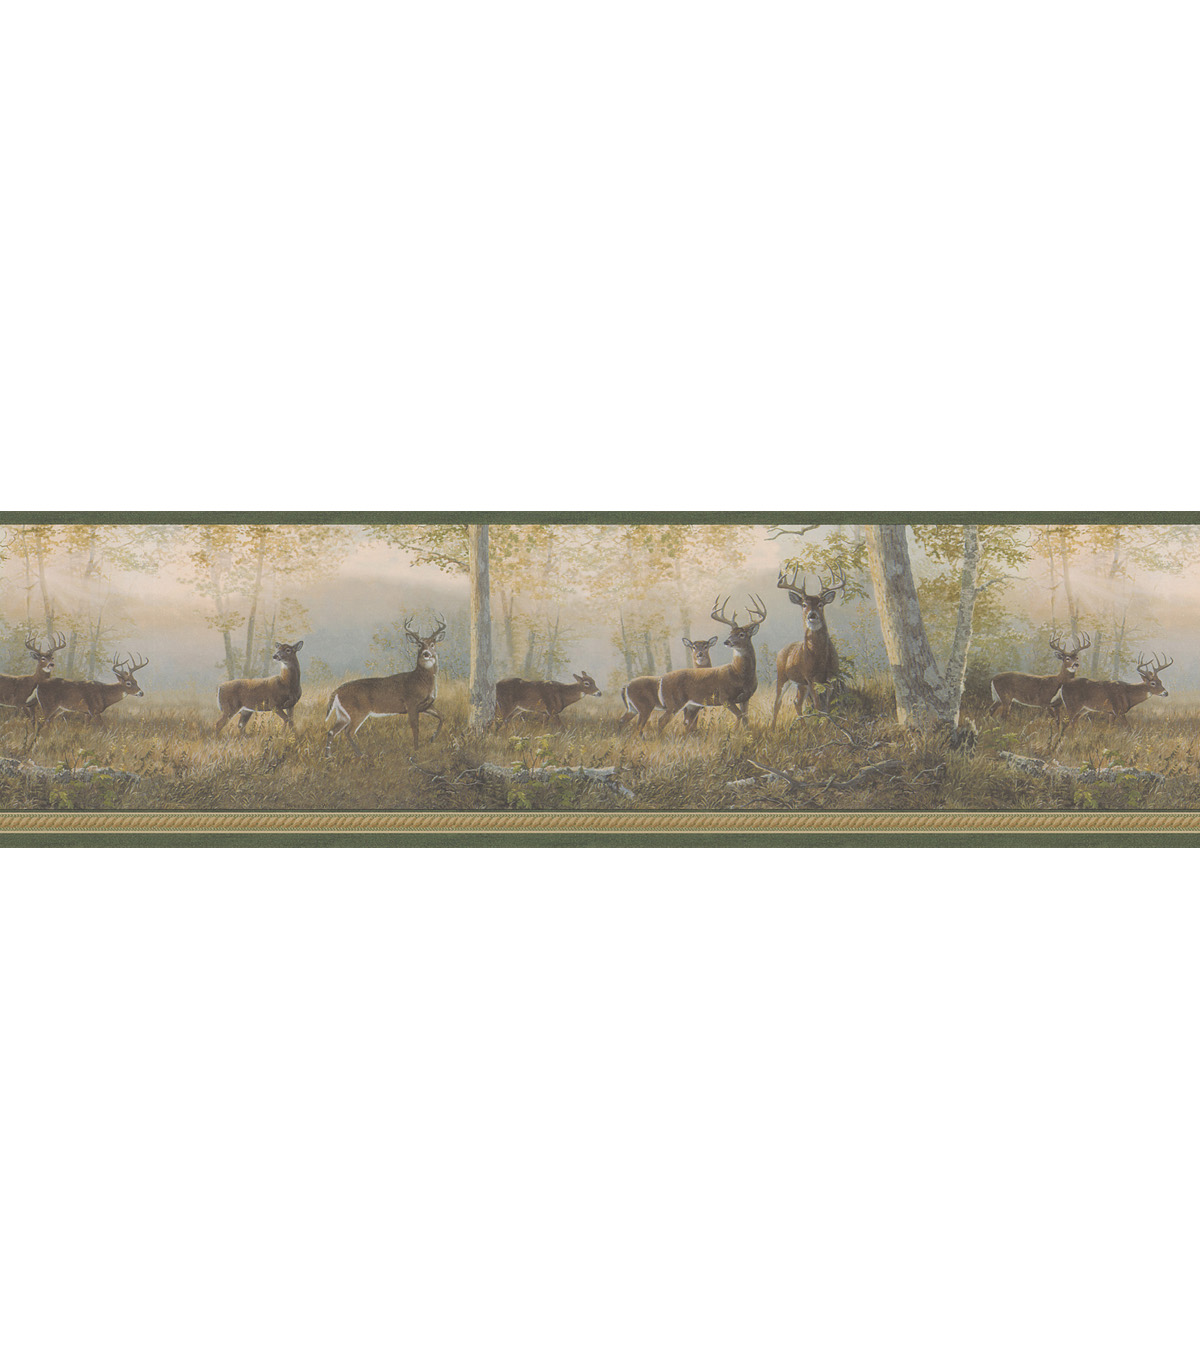 Running Green Deer Wallpaper Border Sample